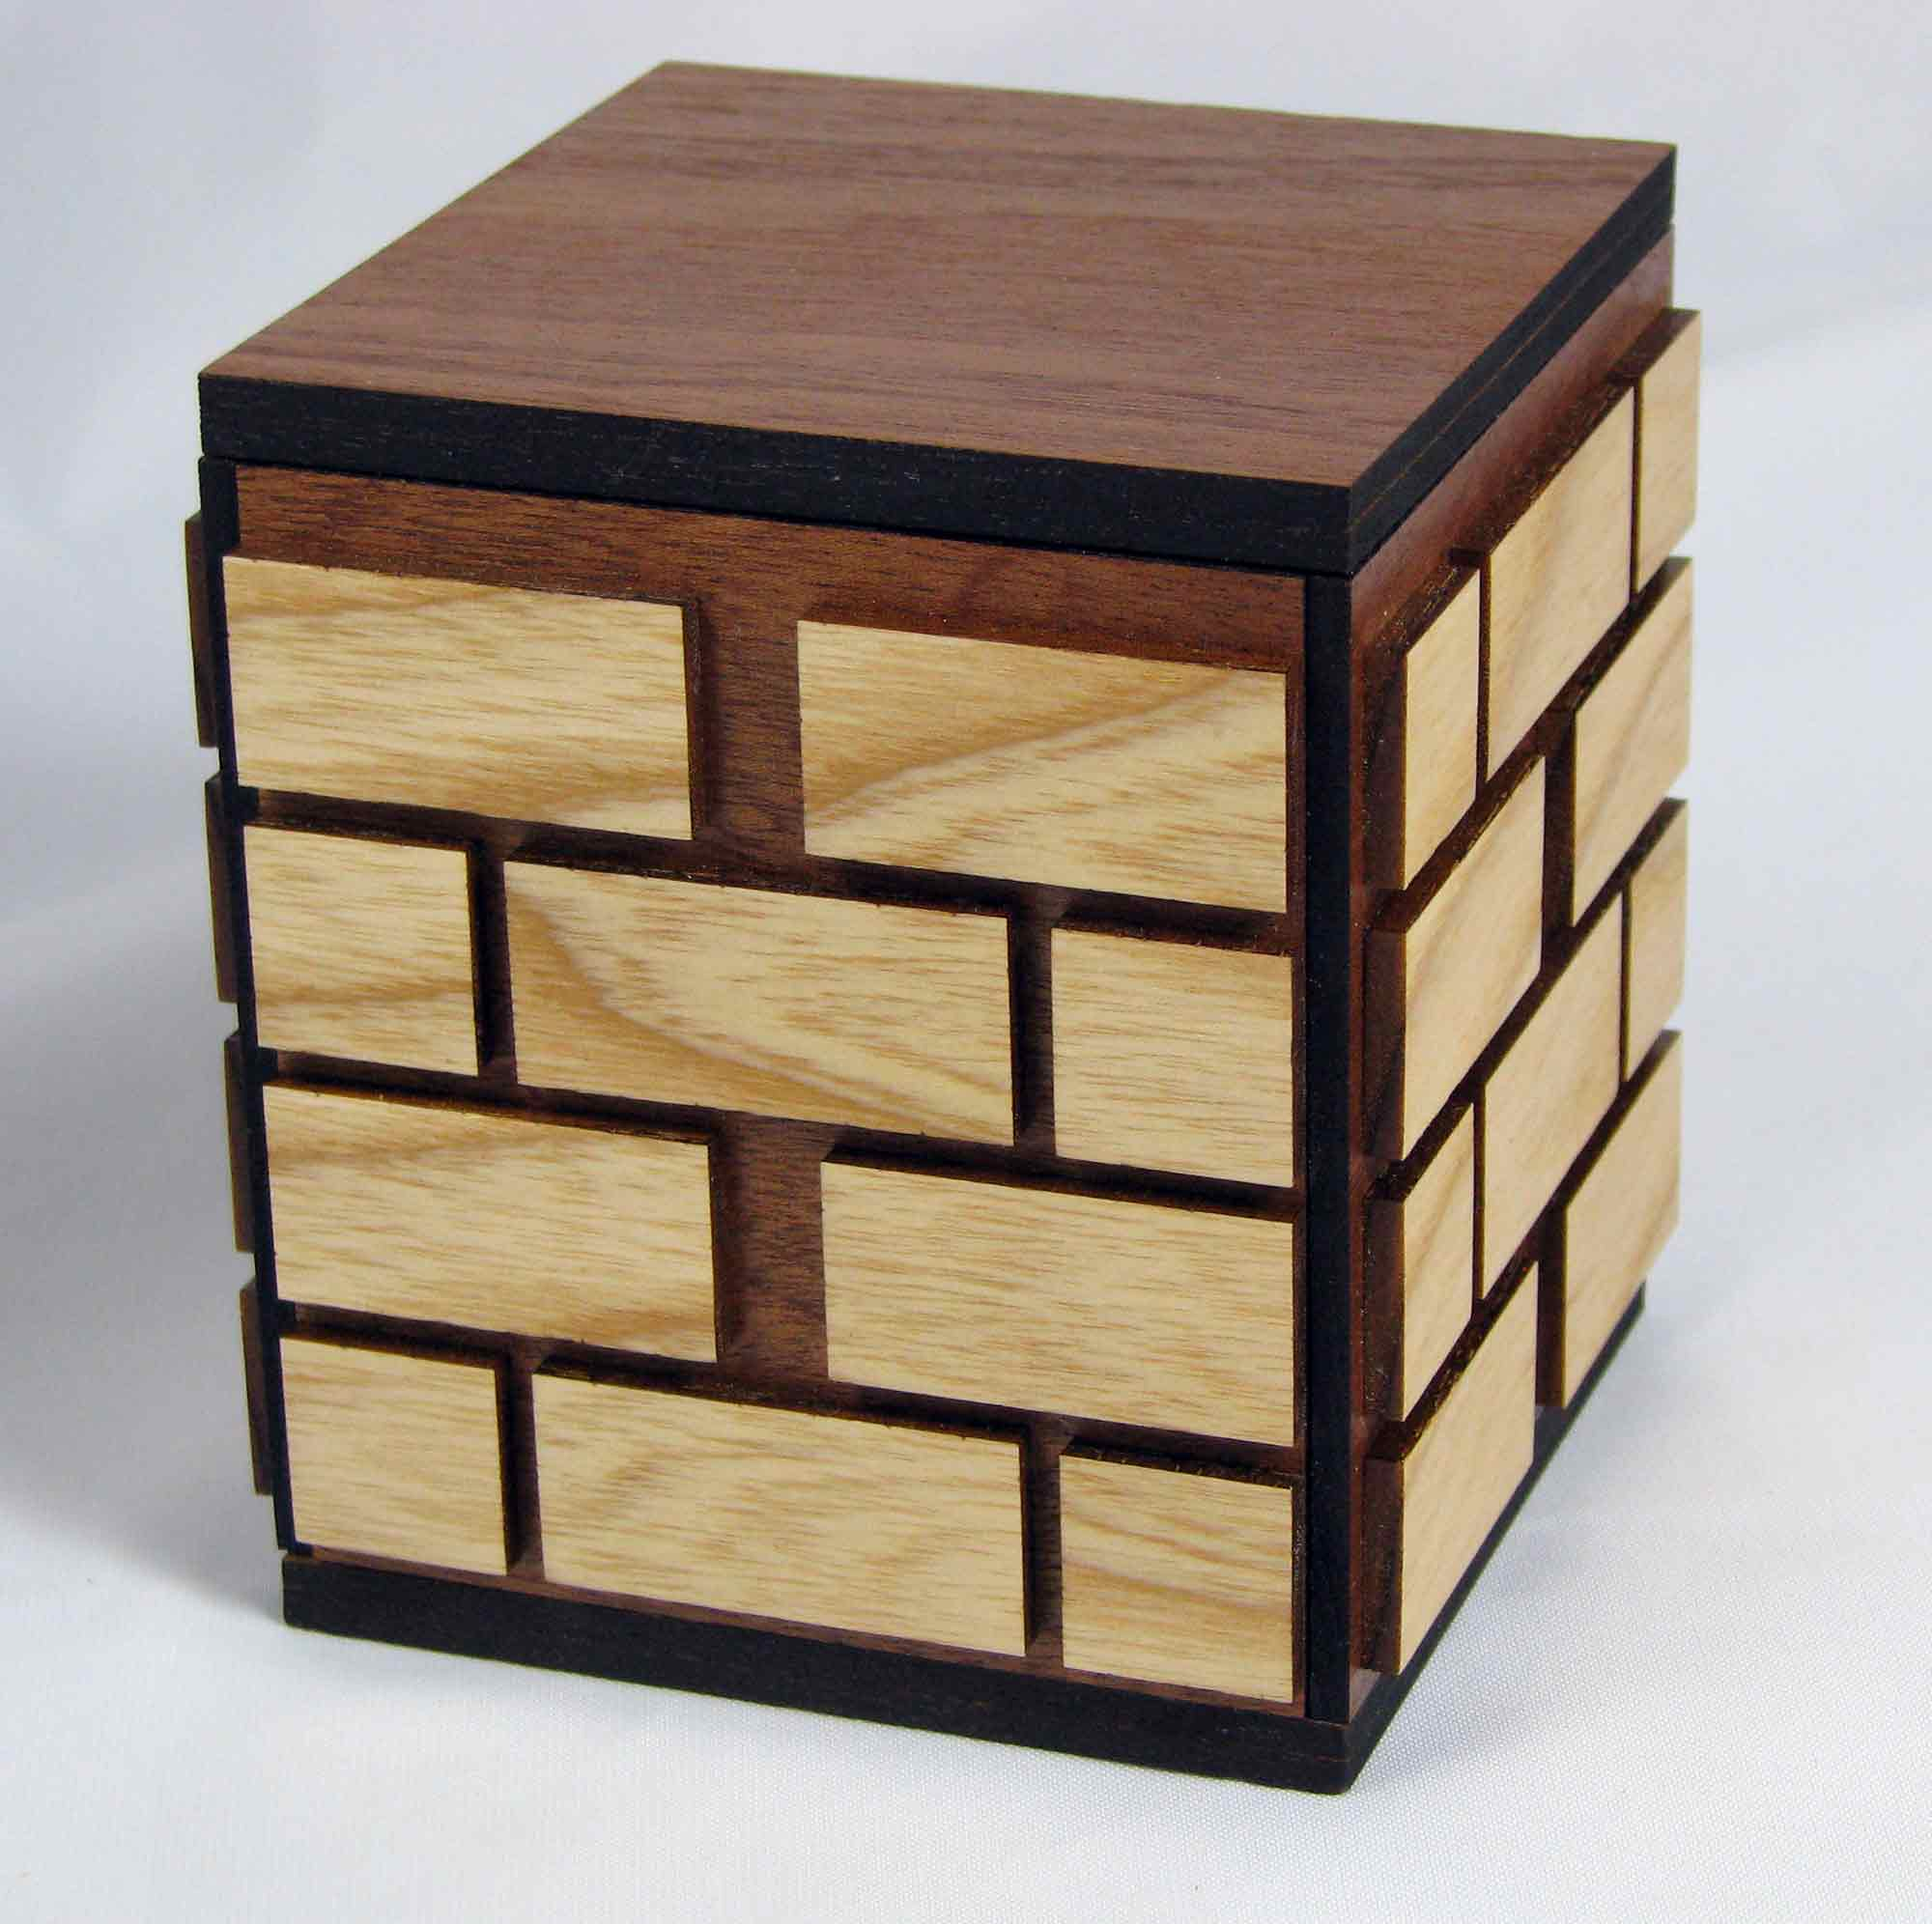 Free japanese puzzle box plans diywoodplans for Box table design